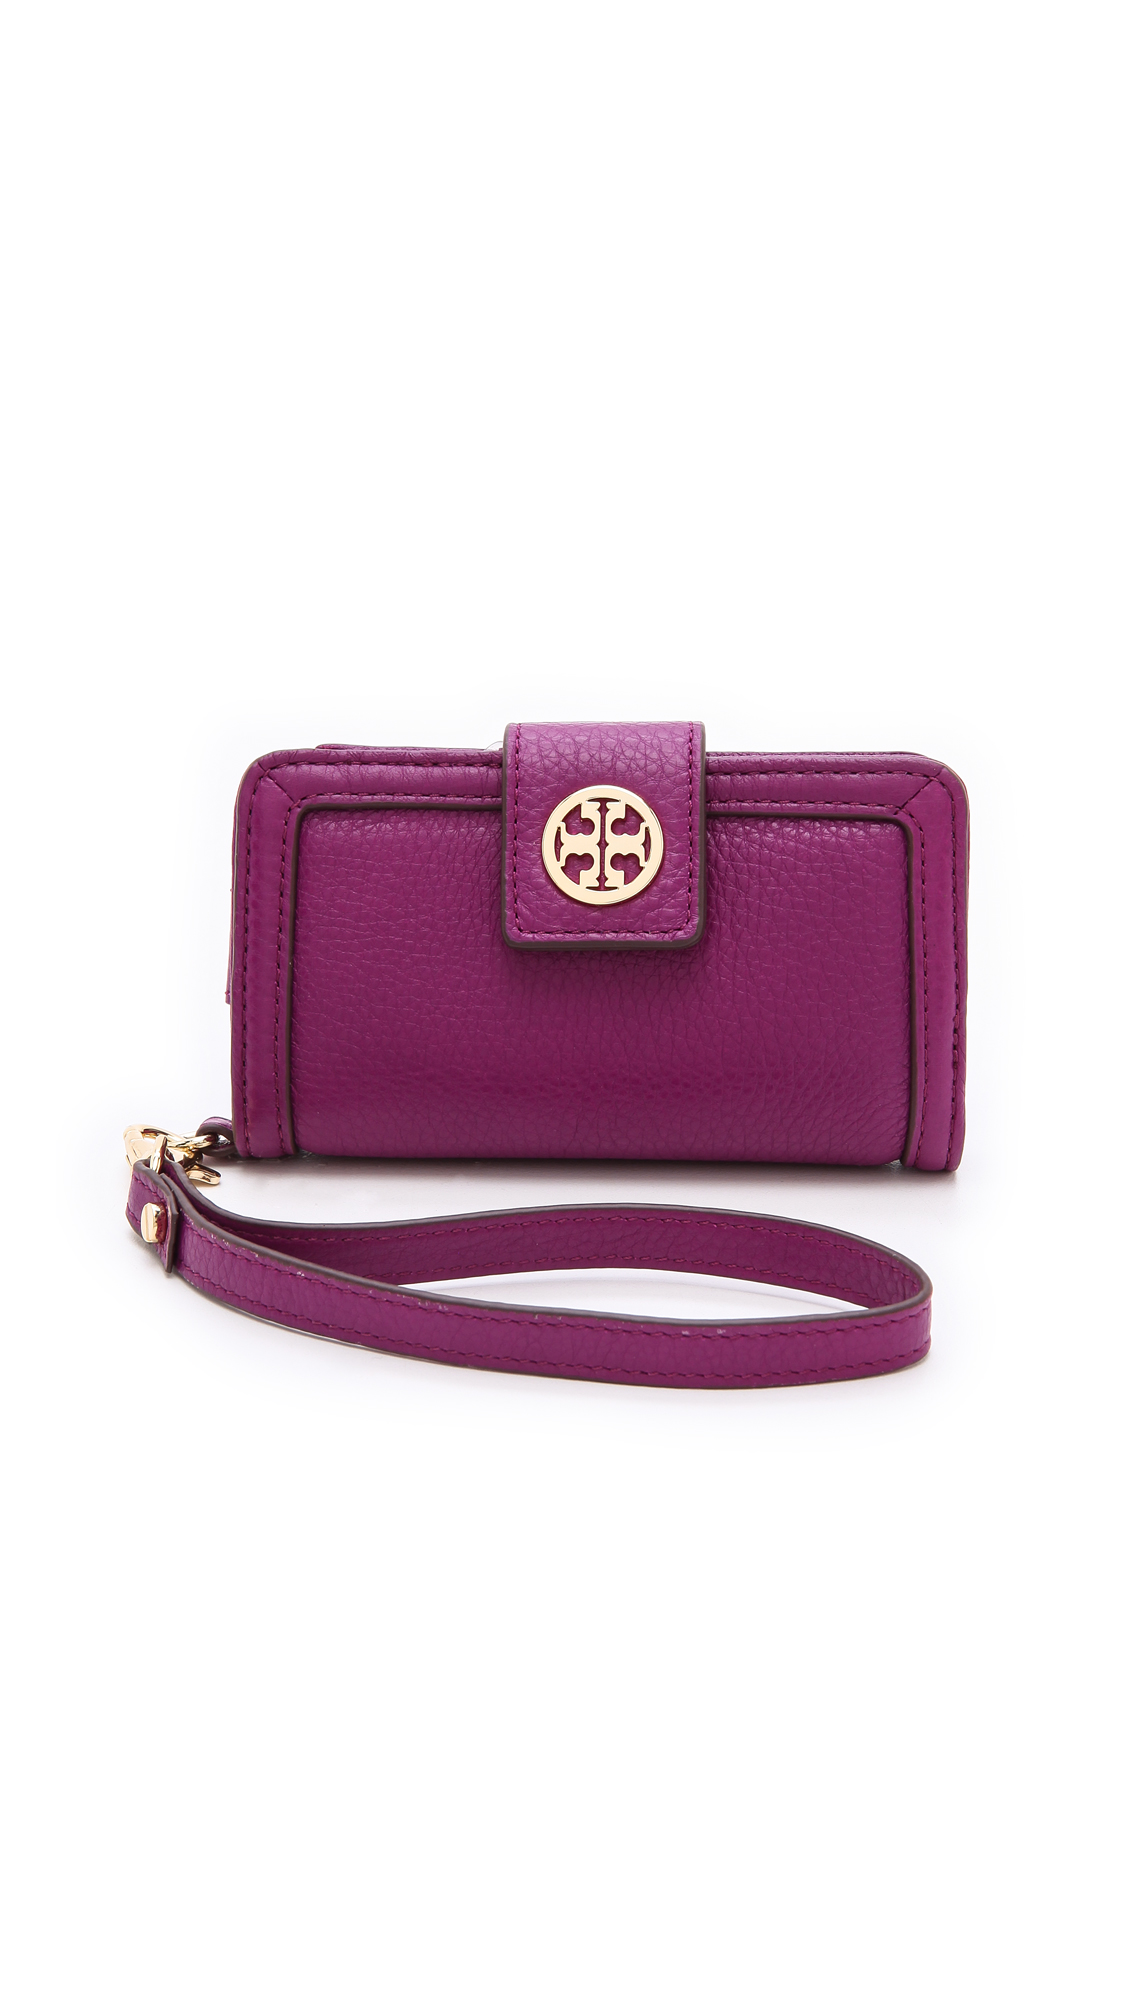 9d1bbffc1ca4 Gallery. Previously sold at  Shopbop · Women s Tory Burch Amanda ...